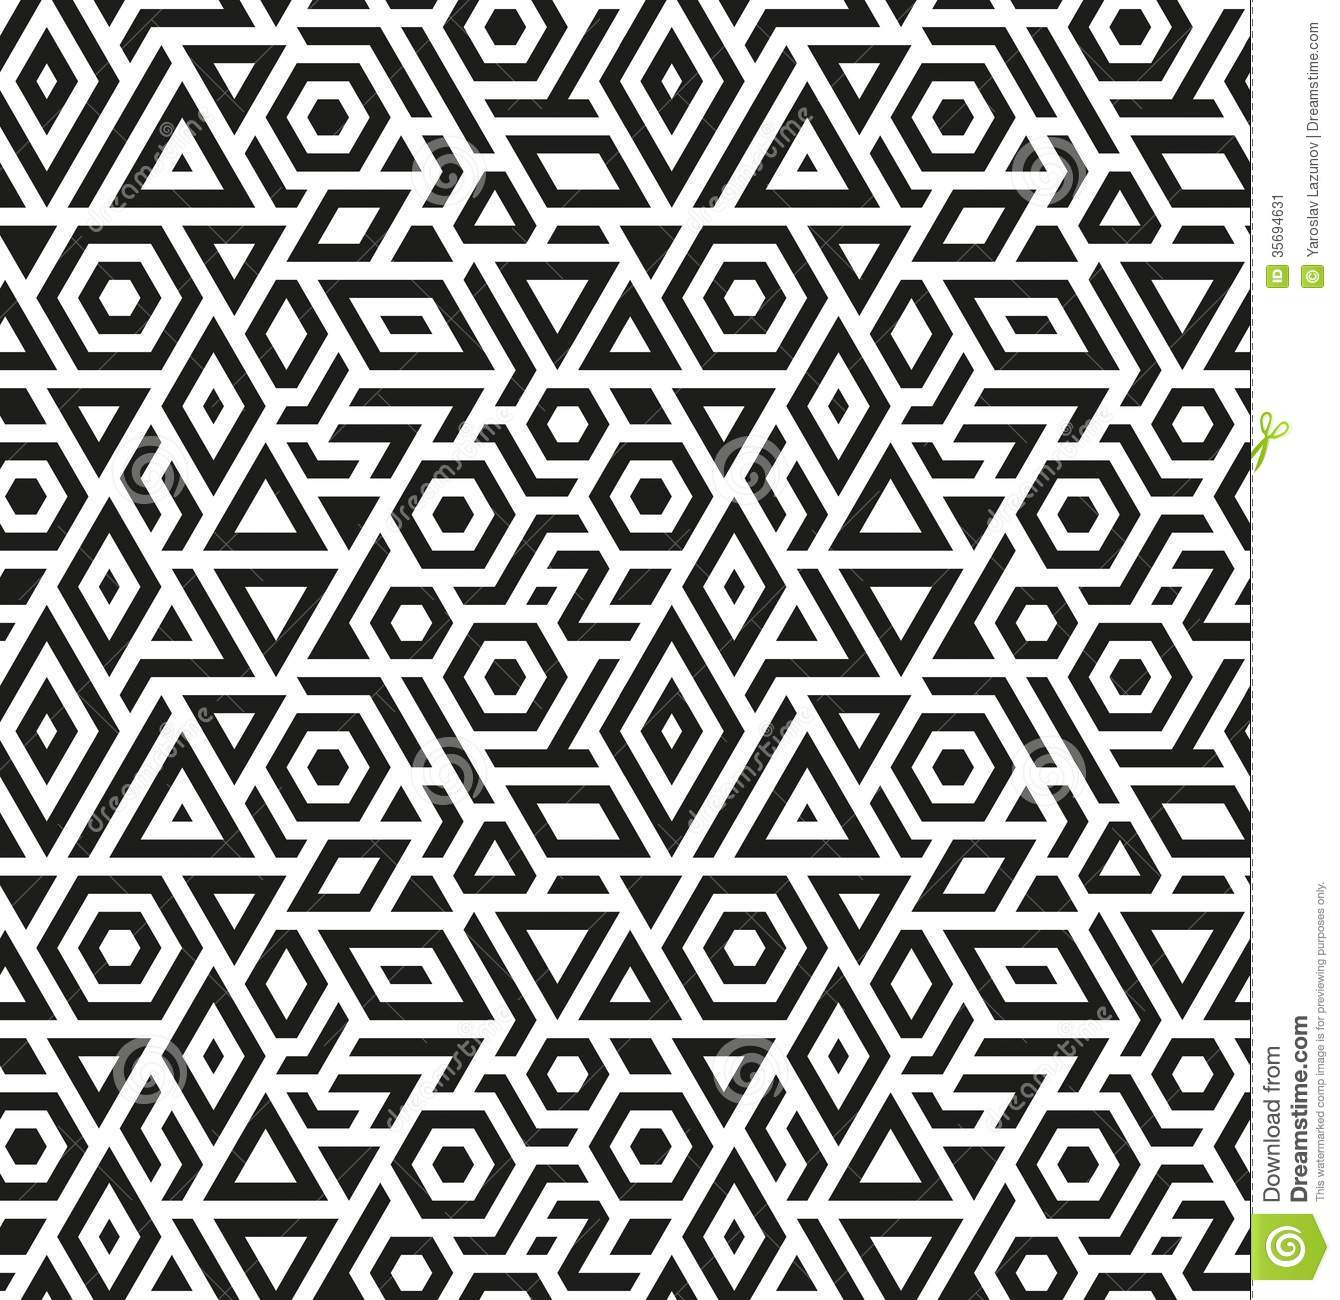 18 Geometric Design Patterns Vector Images